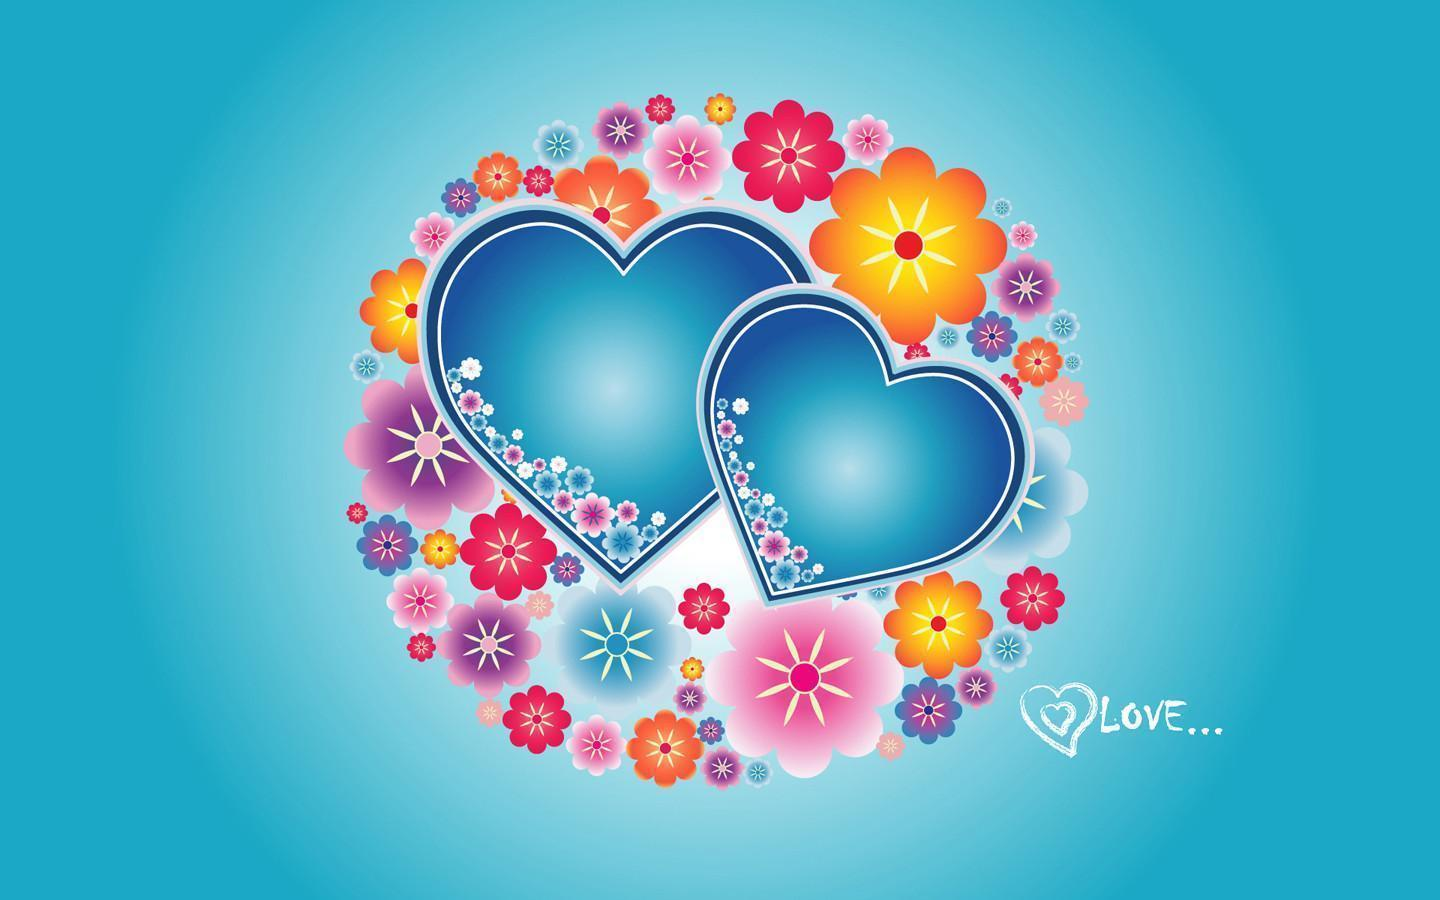 Love Heart Wallpaper Background Hd : Love Heart Wallpapers HD - Wallpaper cave